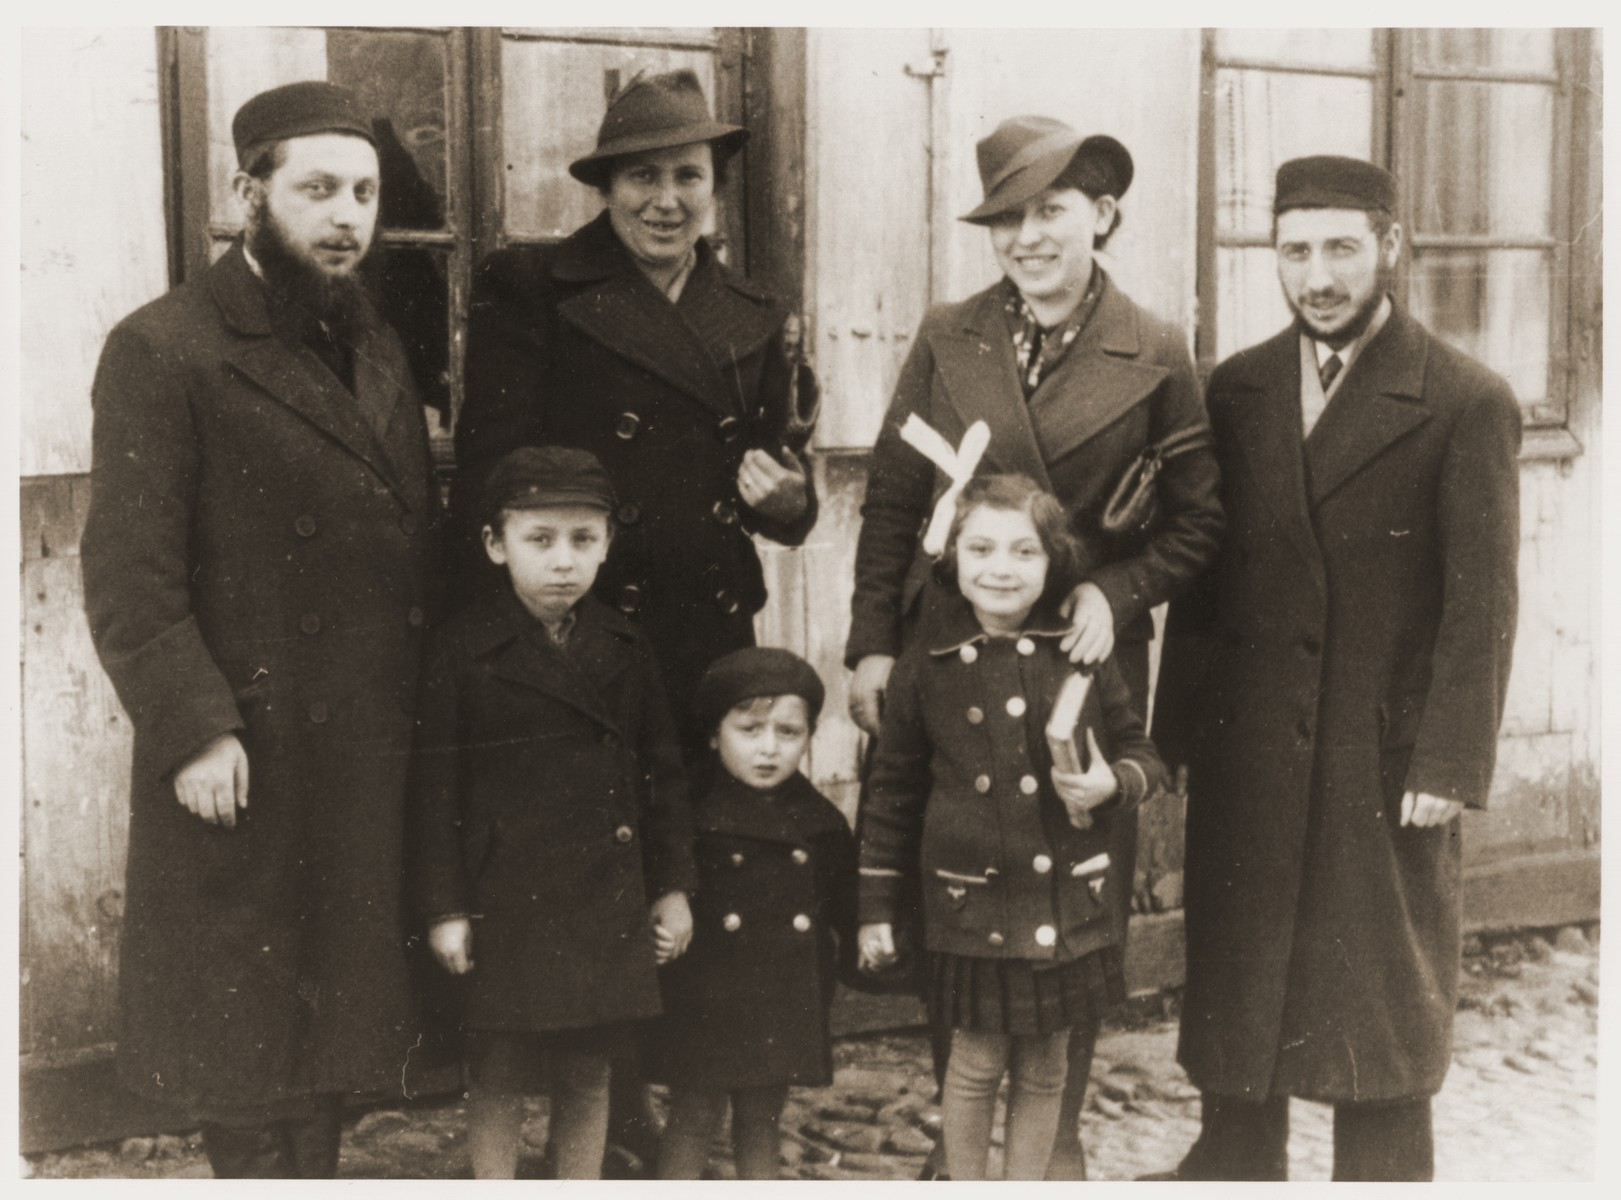 Portrait of the Tenenbaum in front of a house in Warsaw.  Pictured standing (from left to right) are: Pinchas Tenenbaum and his wife, Fajgl (Warszawska)Tenenbaum; Nechama and Srulik Tenenbaum.  In front are Pinchas' three children.